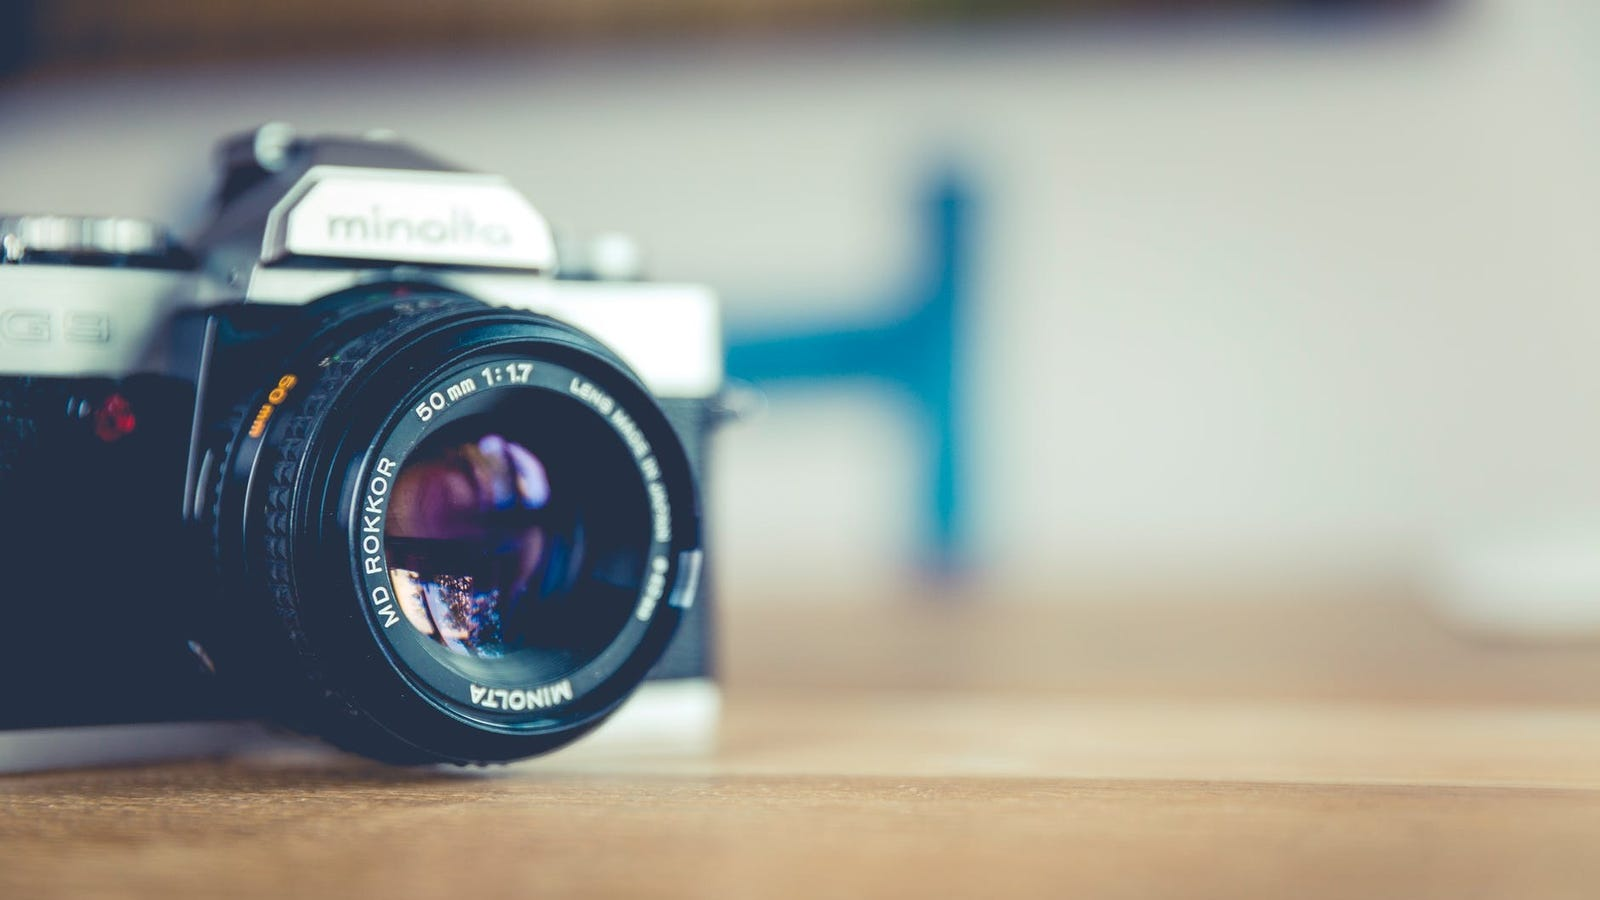 Figure Out Where Your Photos Are Illegally Being Used Online